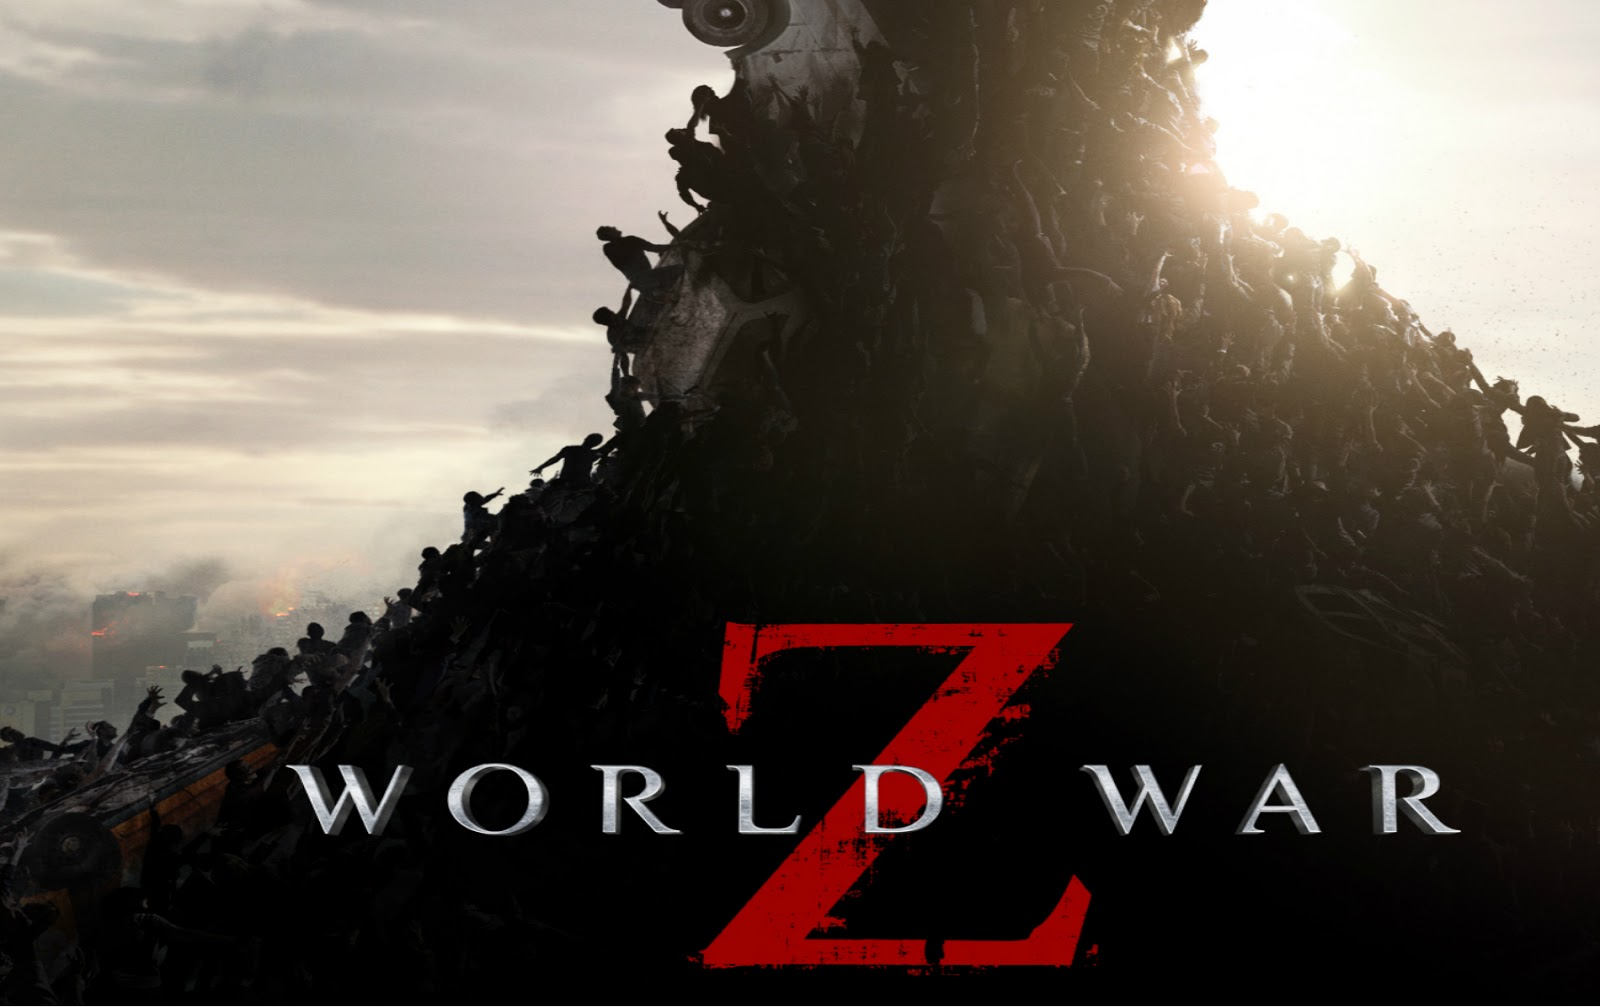 World War Z Movie Font Please Forum